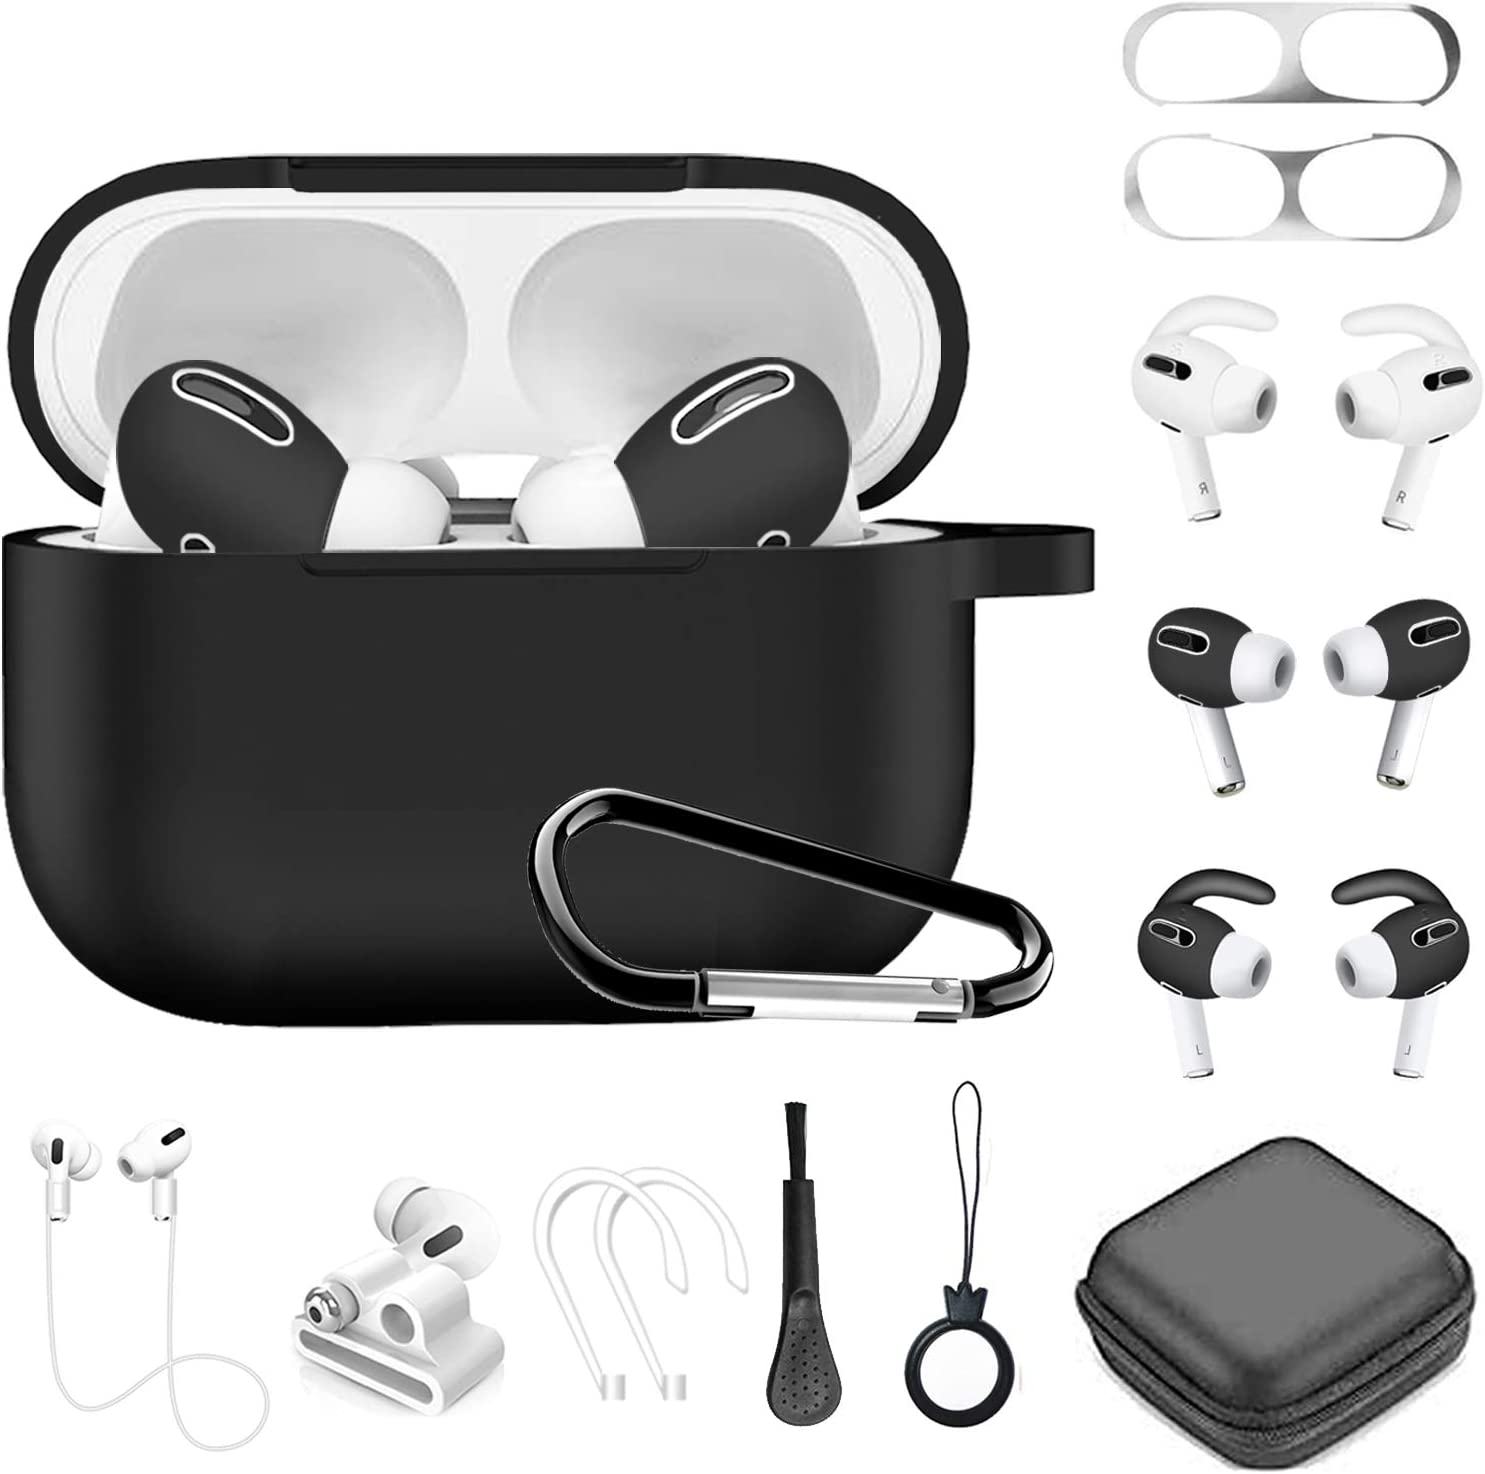 Airpods Pro Case, 12 in 1 Silicone Airpod Pro Accessories kit Set, Apple Airpods 3 Charging Case Cover Skin with Ear Hook/Earbuds Case/Watch Band Holder/Brush/Keychain/Dust Sticker/Eartips (Black)